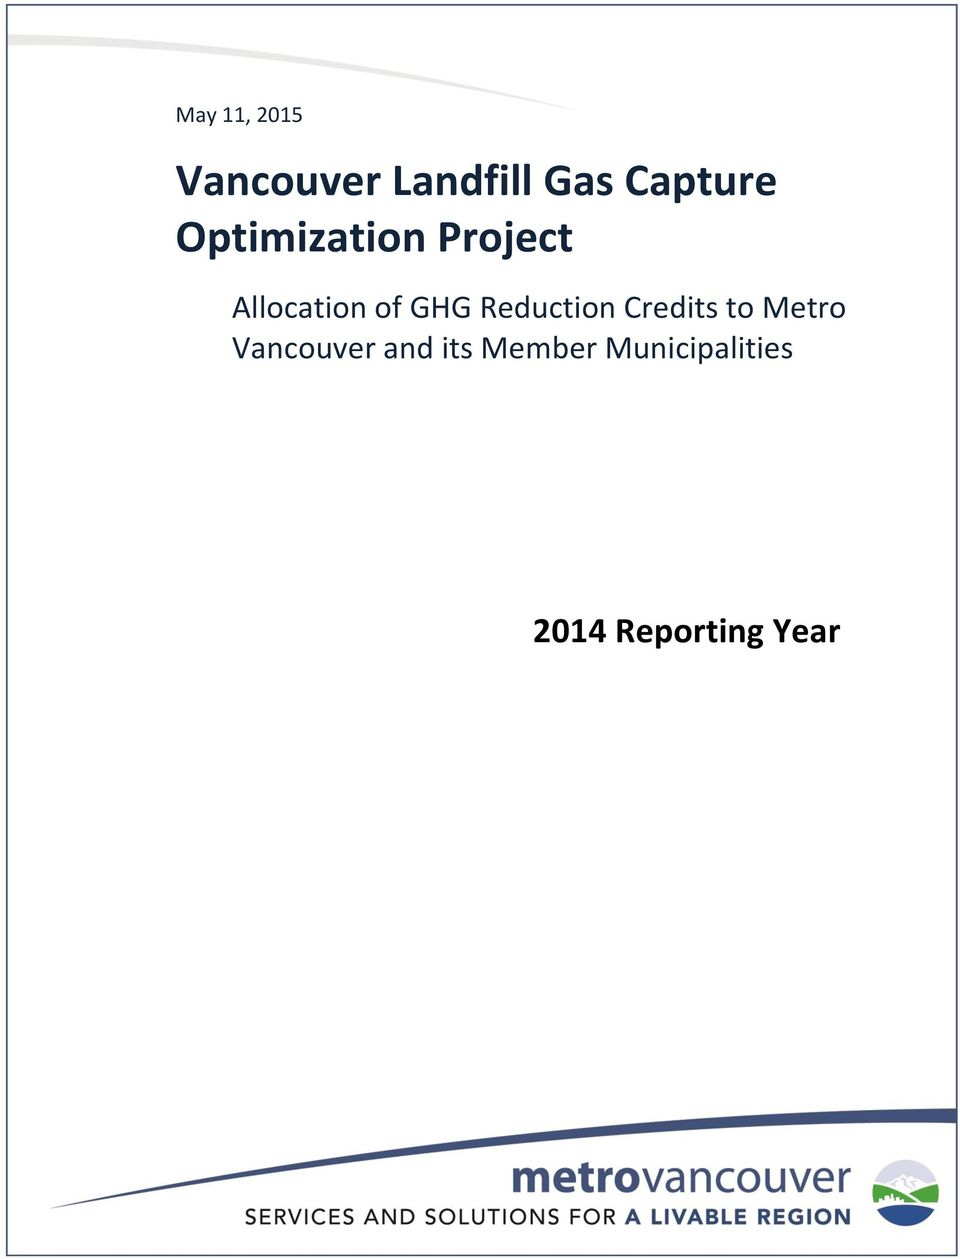 GHG Reduction Credits to Metro Vancouver